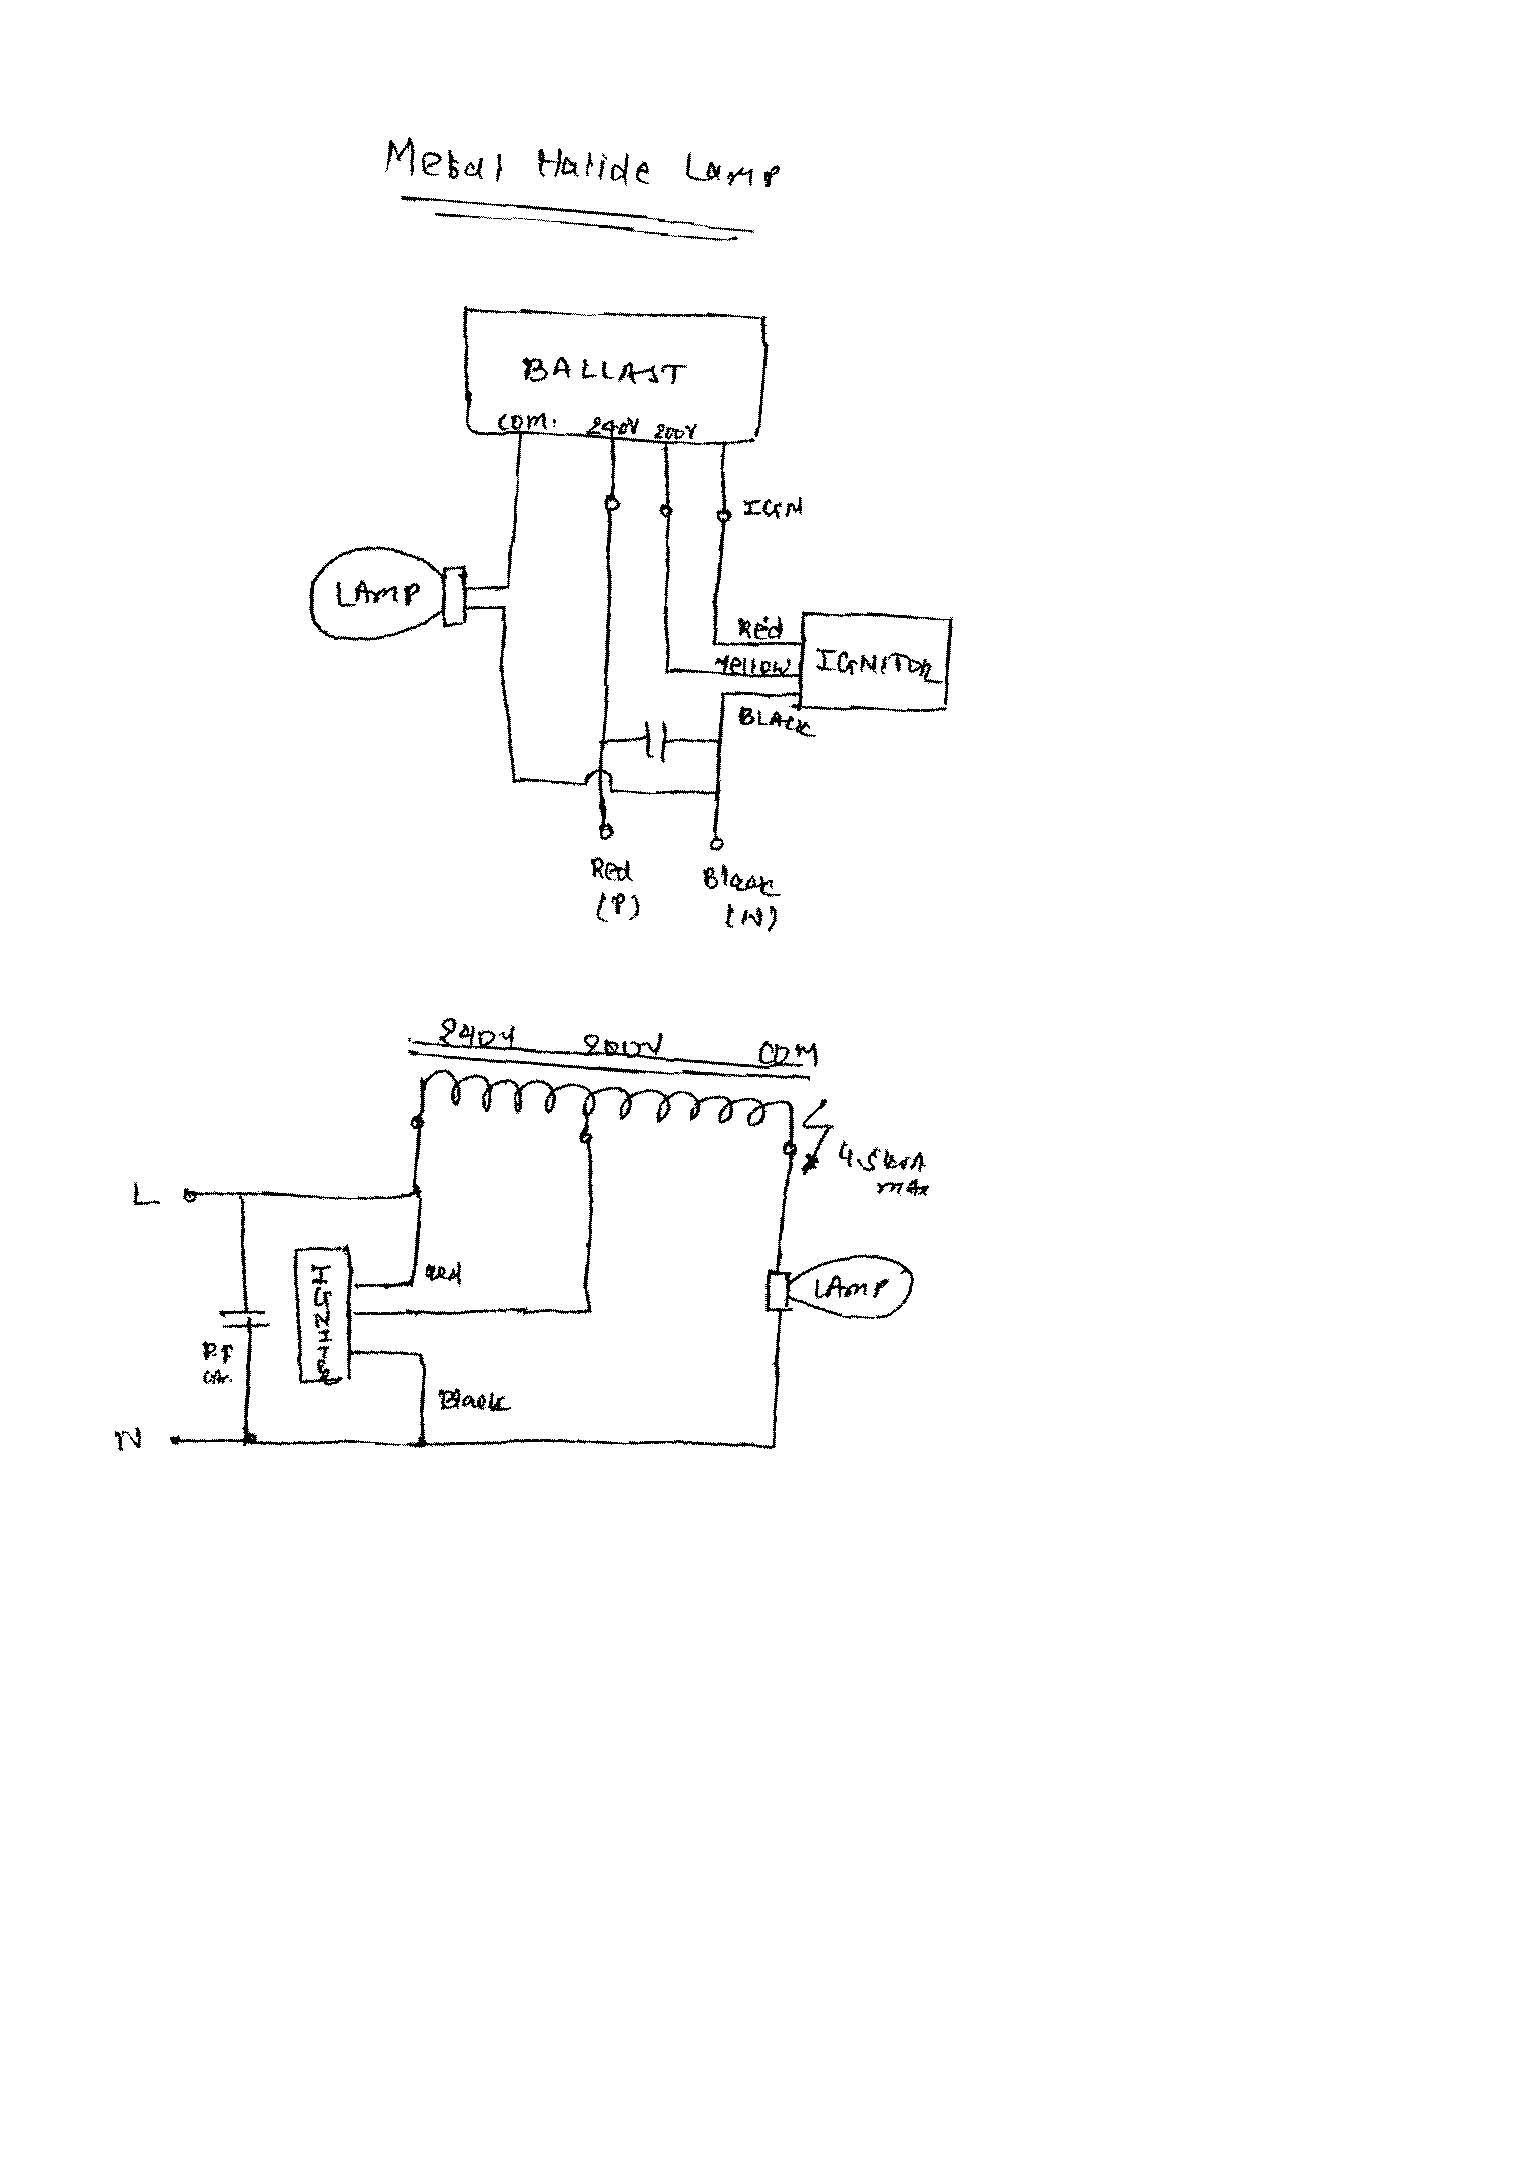 high pressure sodium ballast wiring diagram Collection-Wiring Diagram For Metal Halide Lights Top rated High Pressure Sodium Lamp Wiring Diagram Inspirational Hid Ballast 5-r